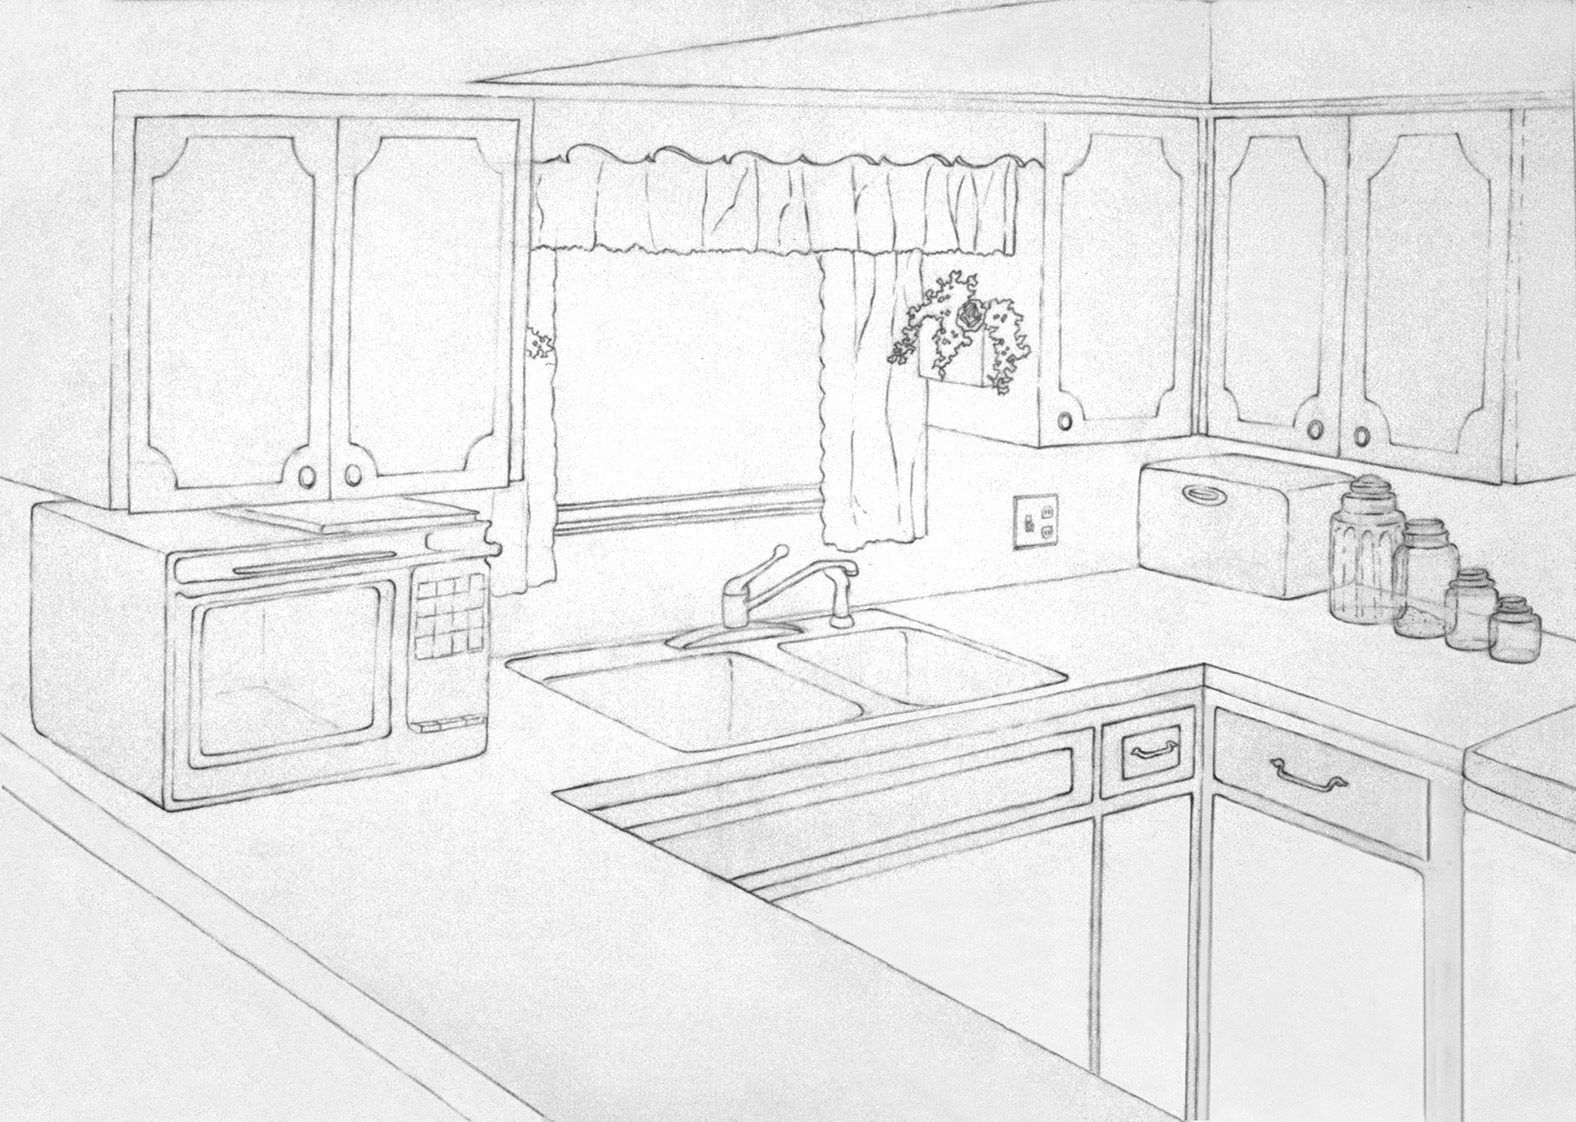 Drawing A Room Or Space Or Building From Direct Observation In 2 Pt